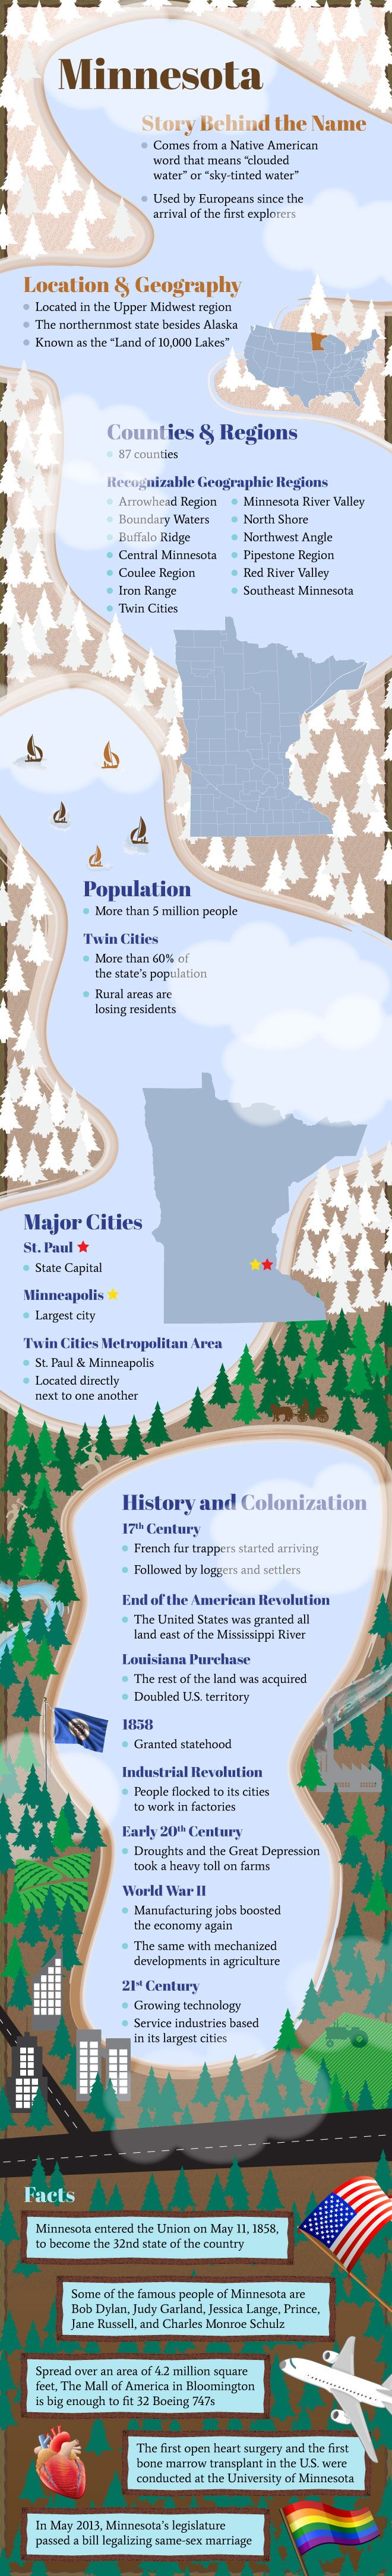 Infographic of Minnesota Fast Facts Page UsaMinnesota